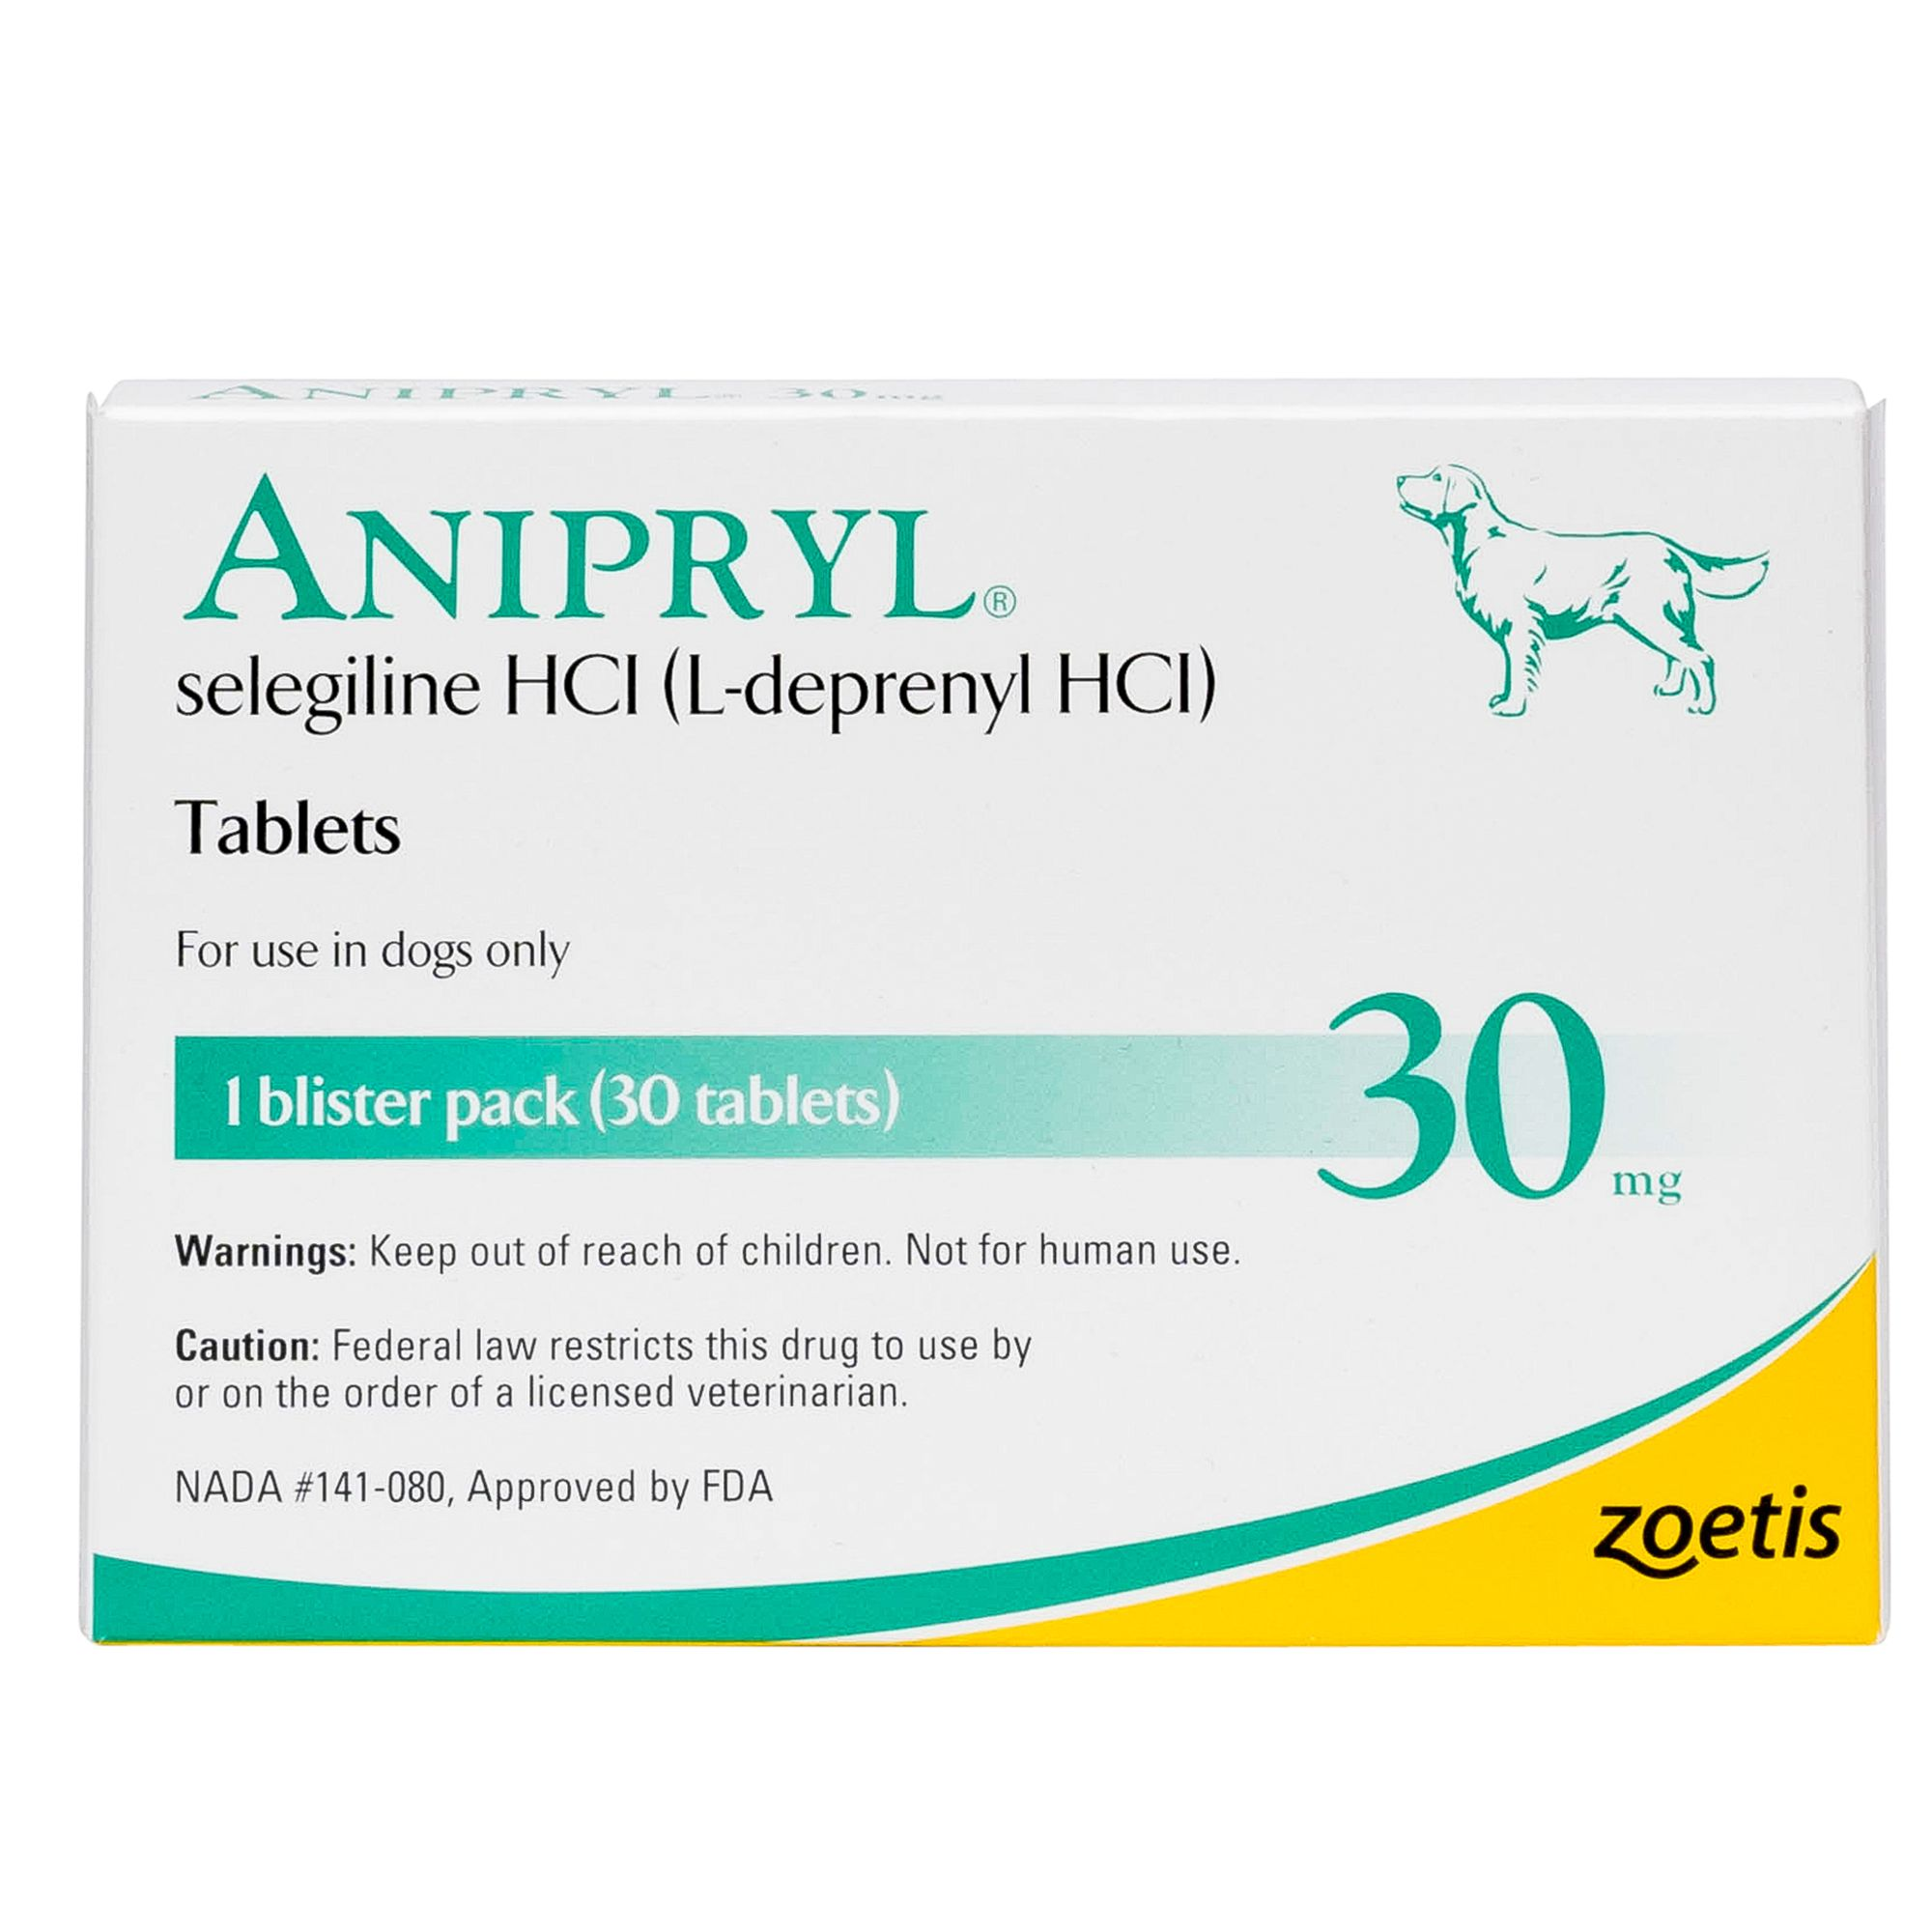 Anipryl Tablet Size 30 Mg